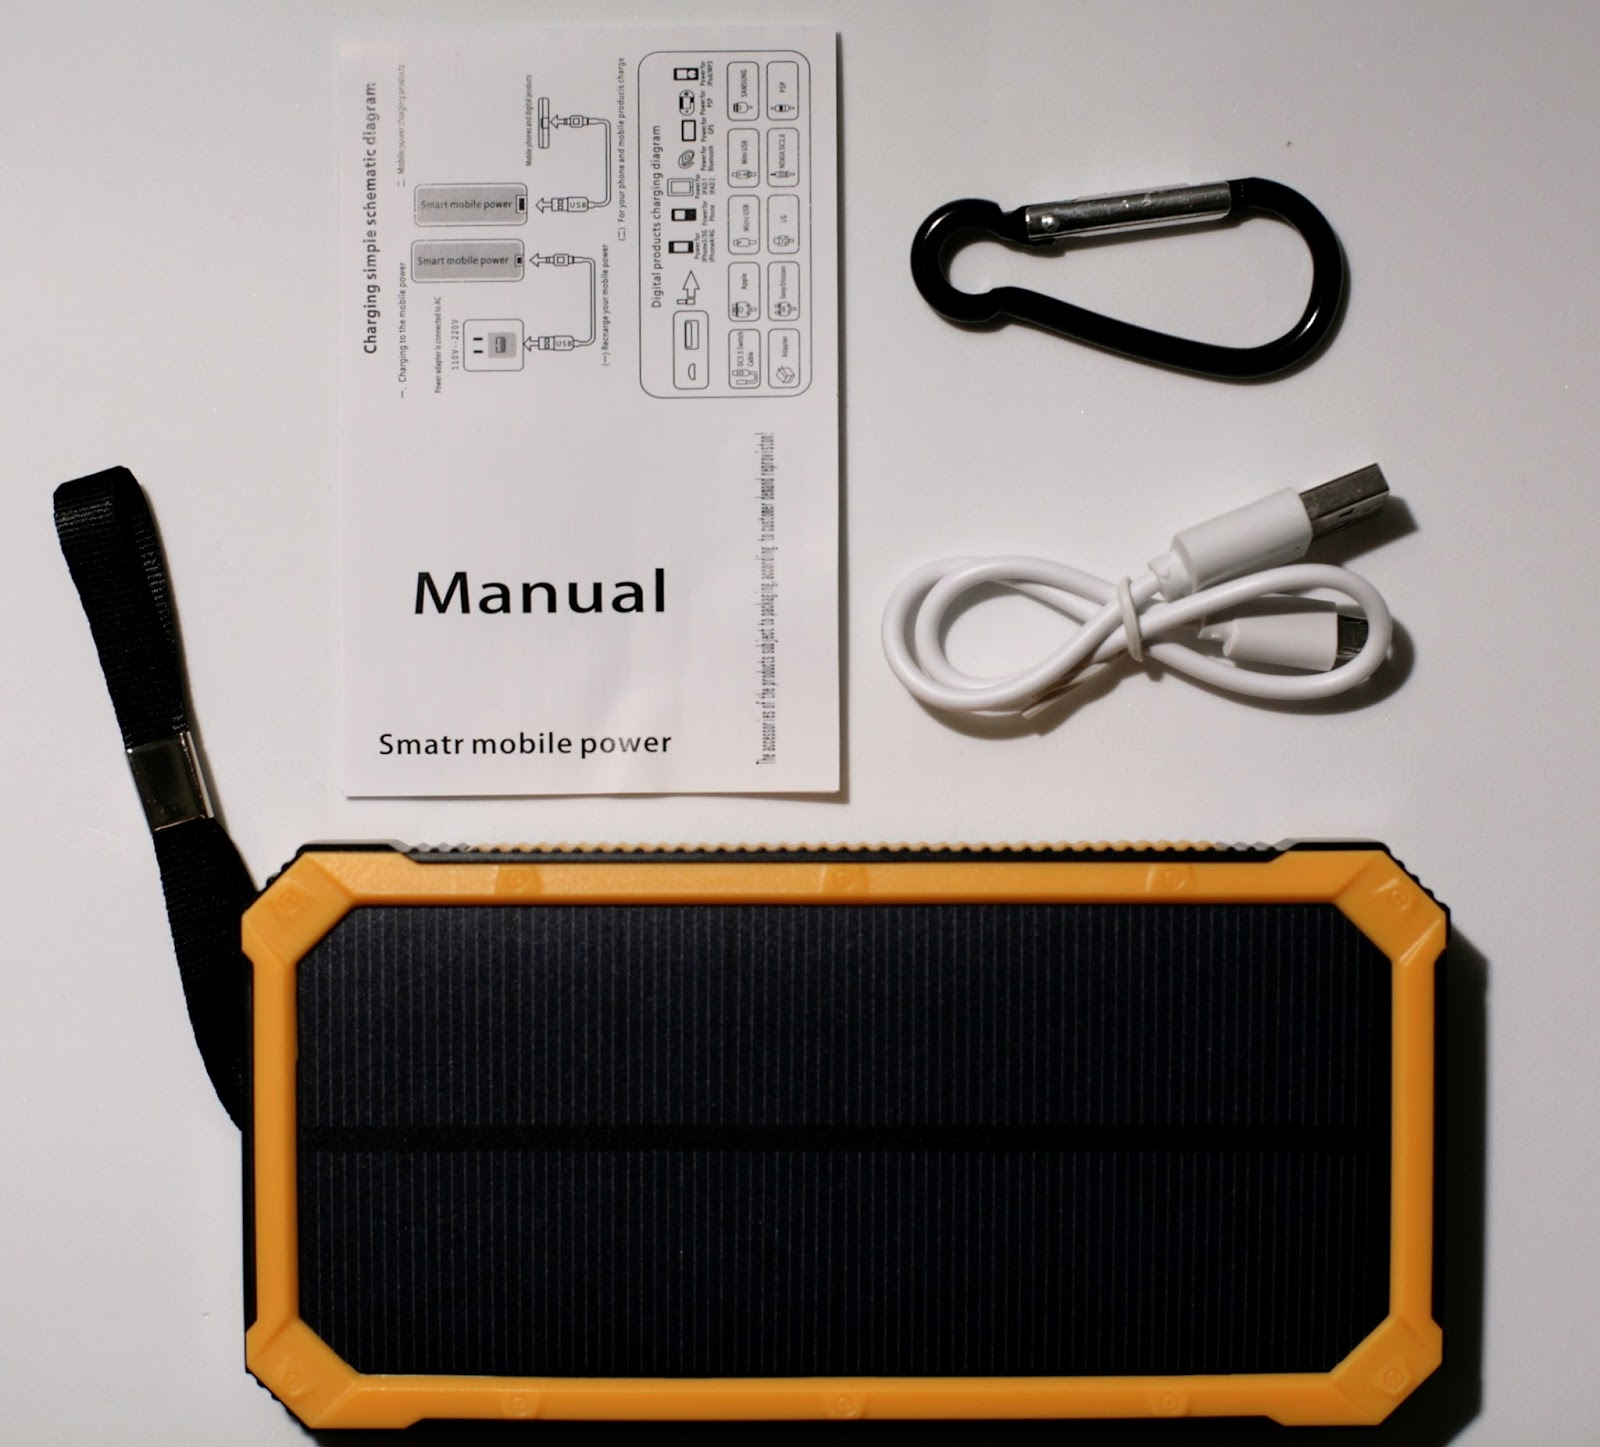 Tollcuudda Dyhk01 10000mah Solar Power Bank Review 725 Efficient Usb Schematic Diagram Often When You Buy A What See Is Not Get There Shady Grey Market Of Banks On Ebay And Amazon That Claim To Have